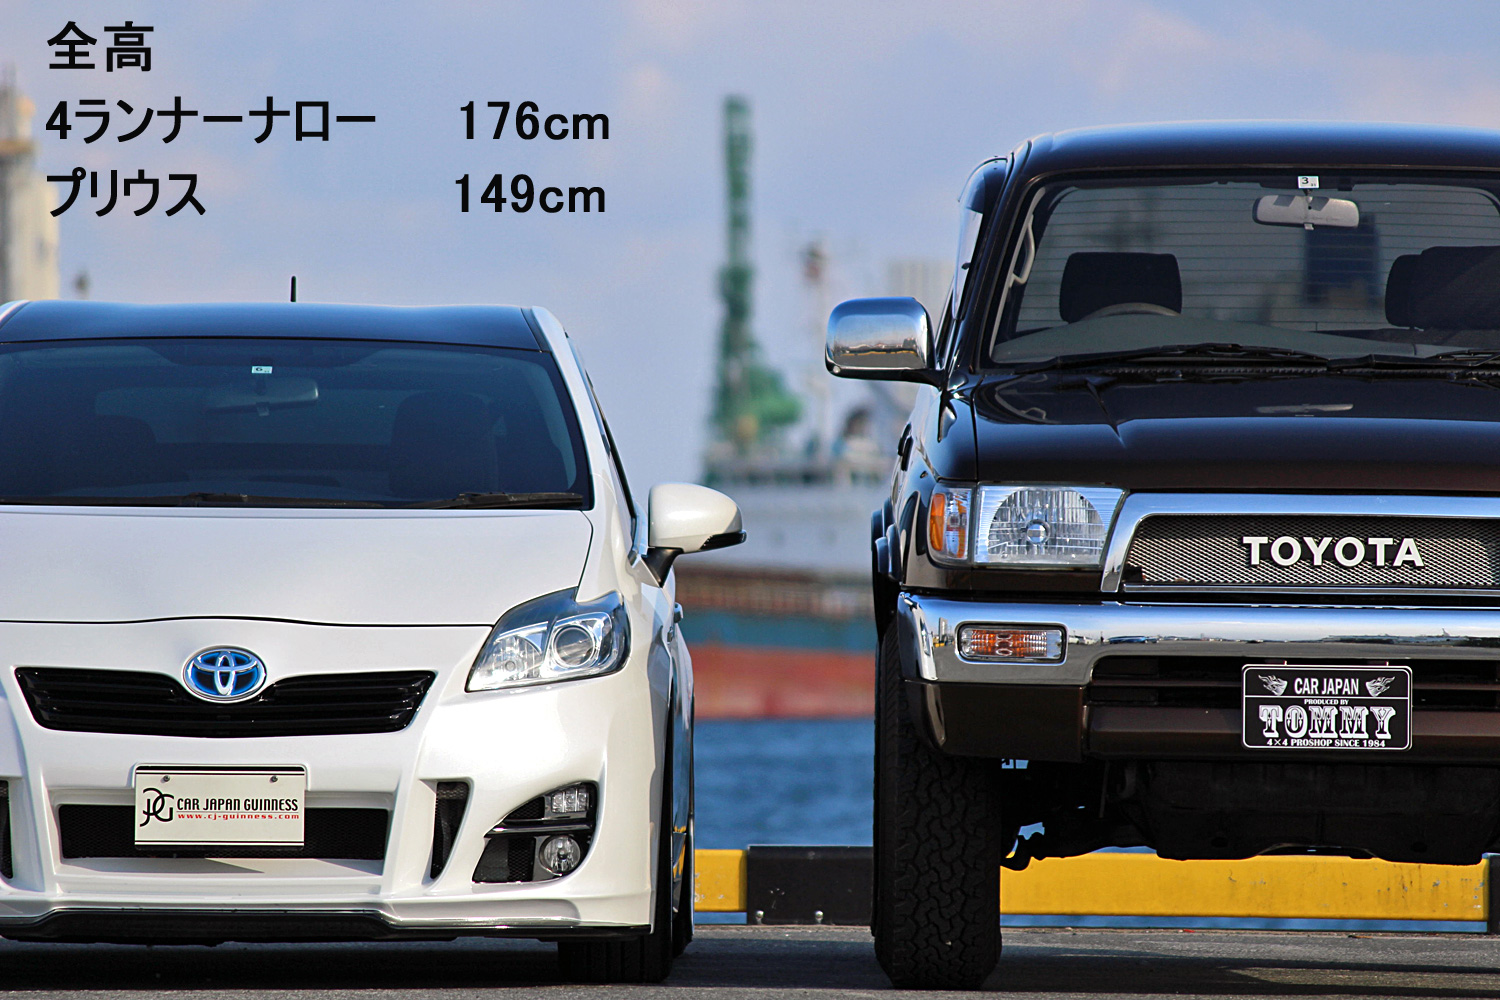 Hiluxsurf-4RUNNER-NARROWサイズ003